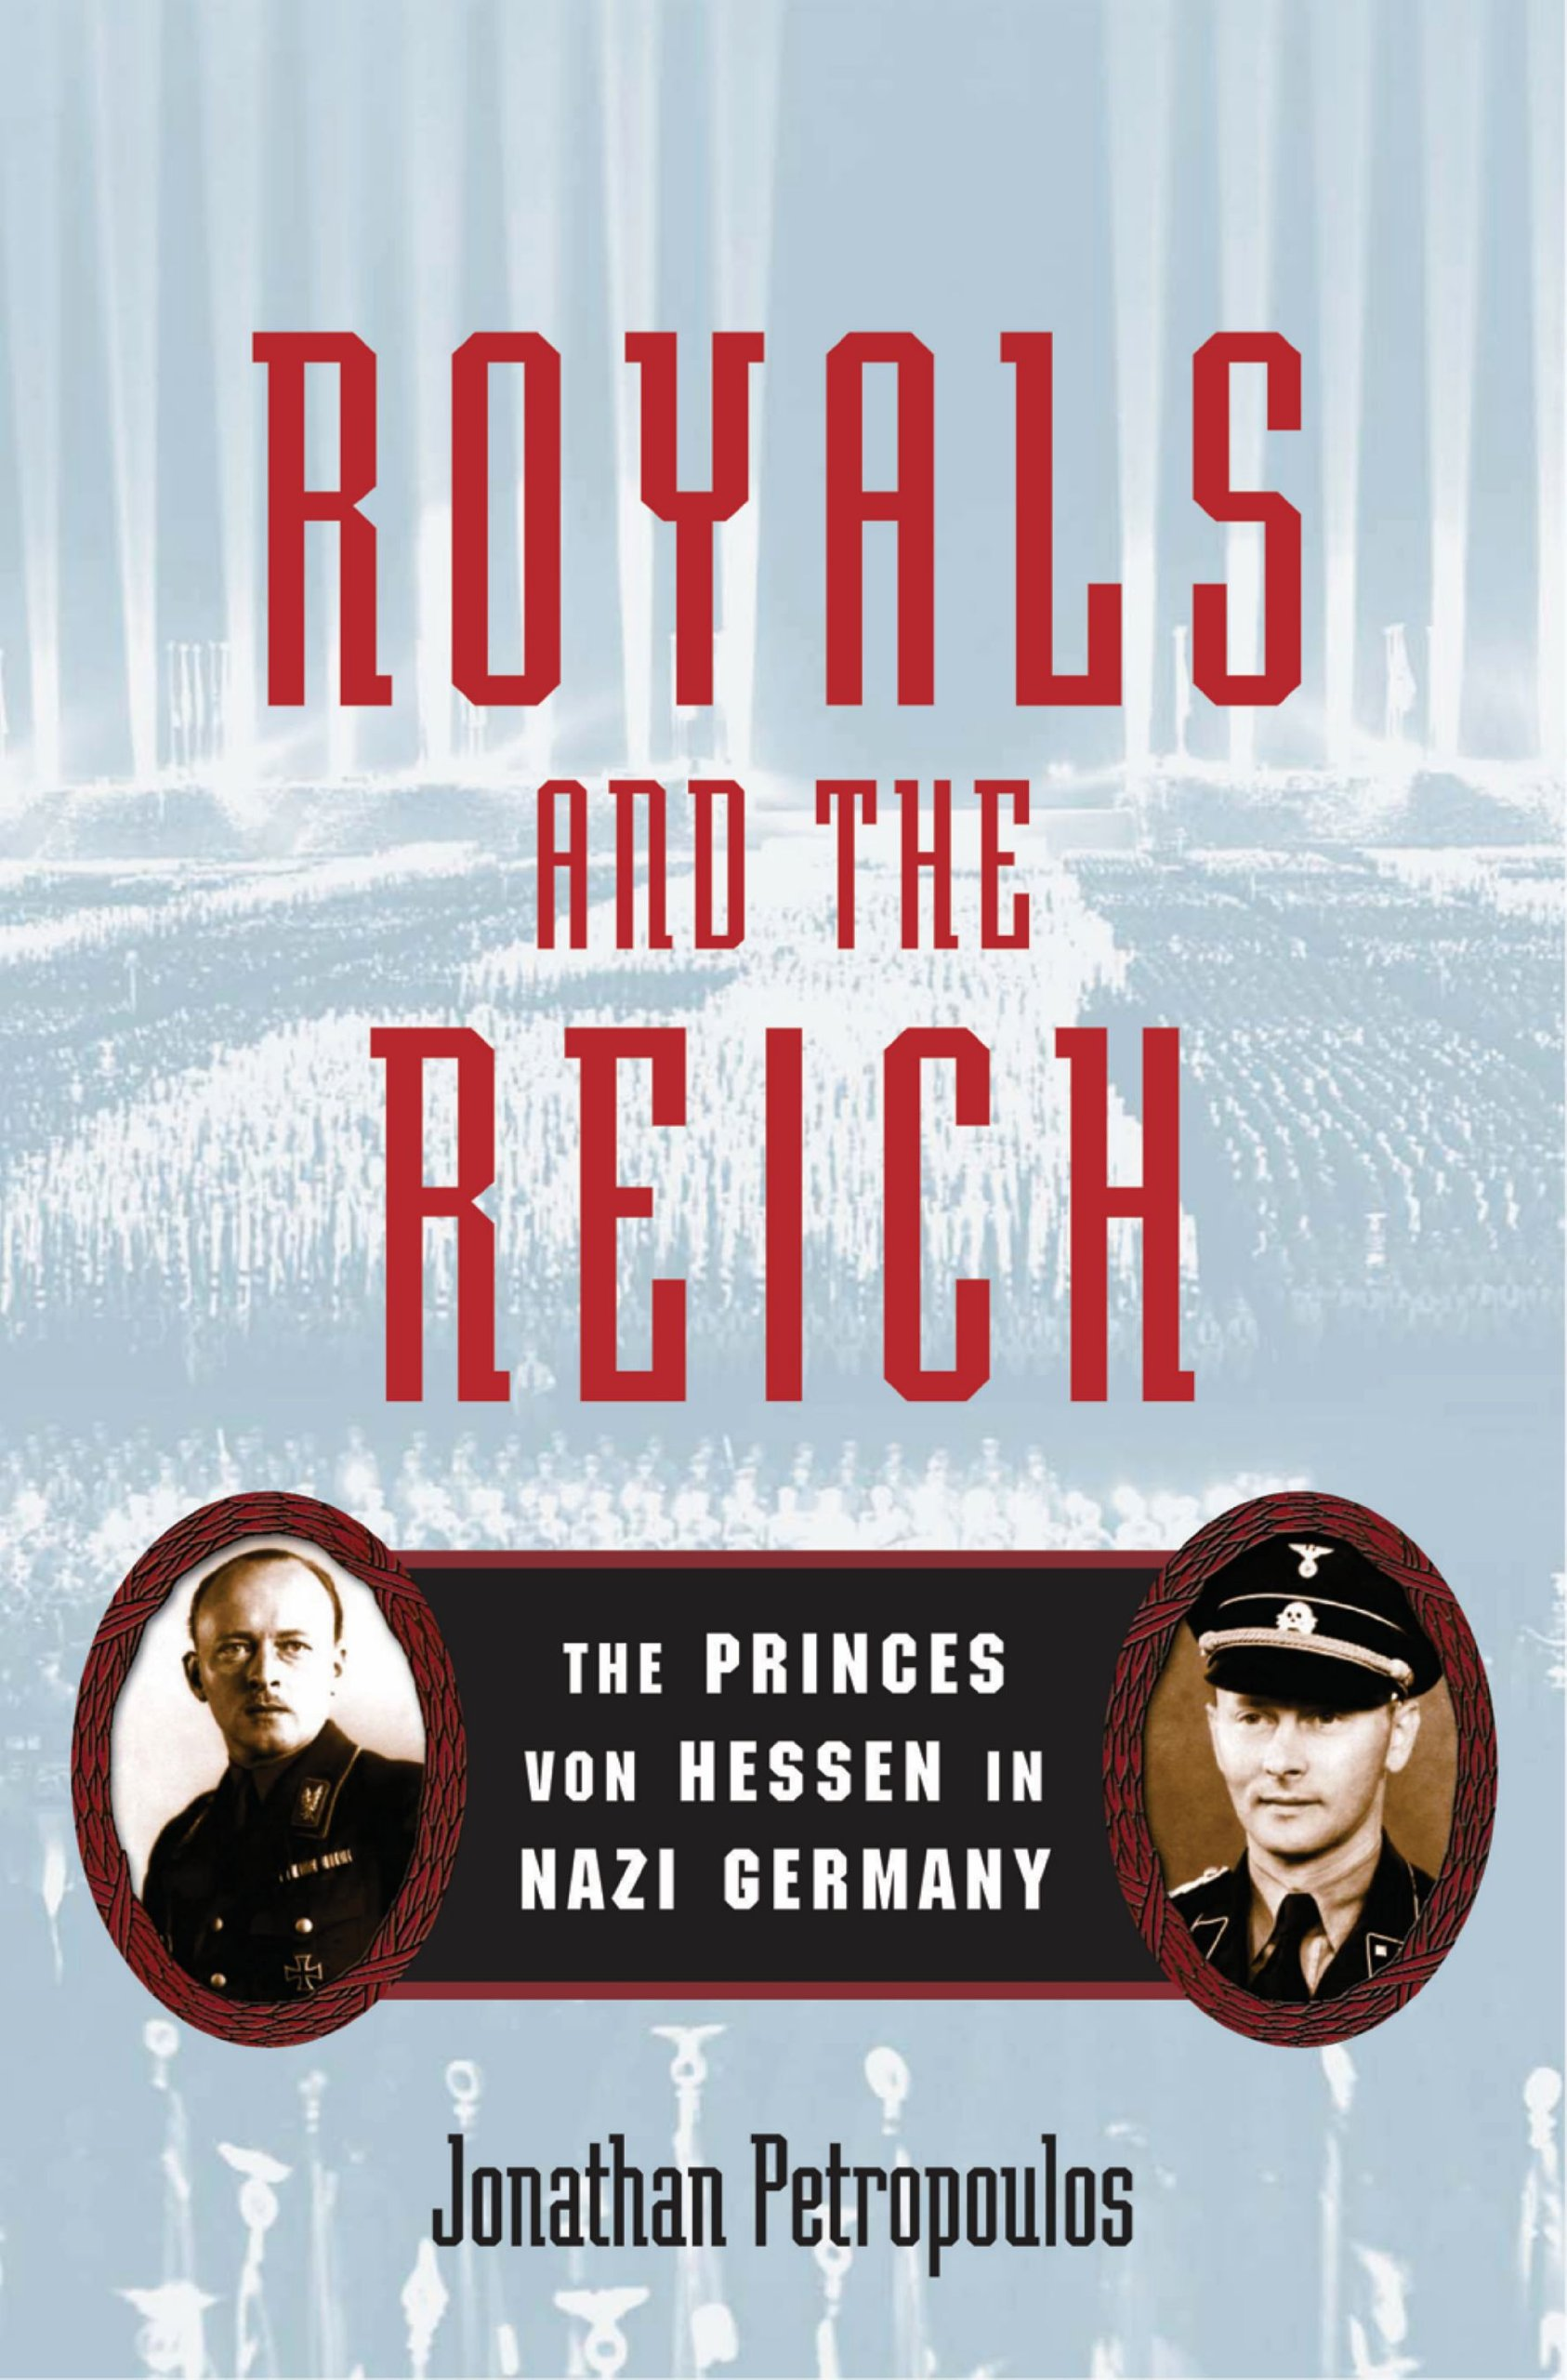 Royals and the Reich: The Princes von Hessen in Nazi Germany, by Jonathan Petropoulos